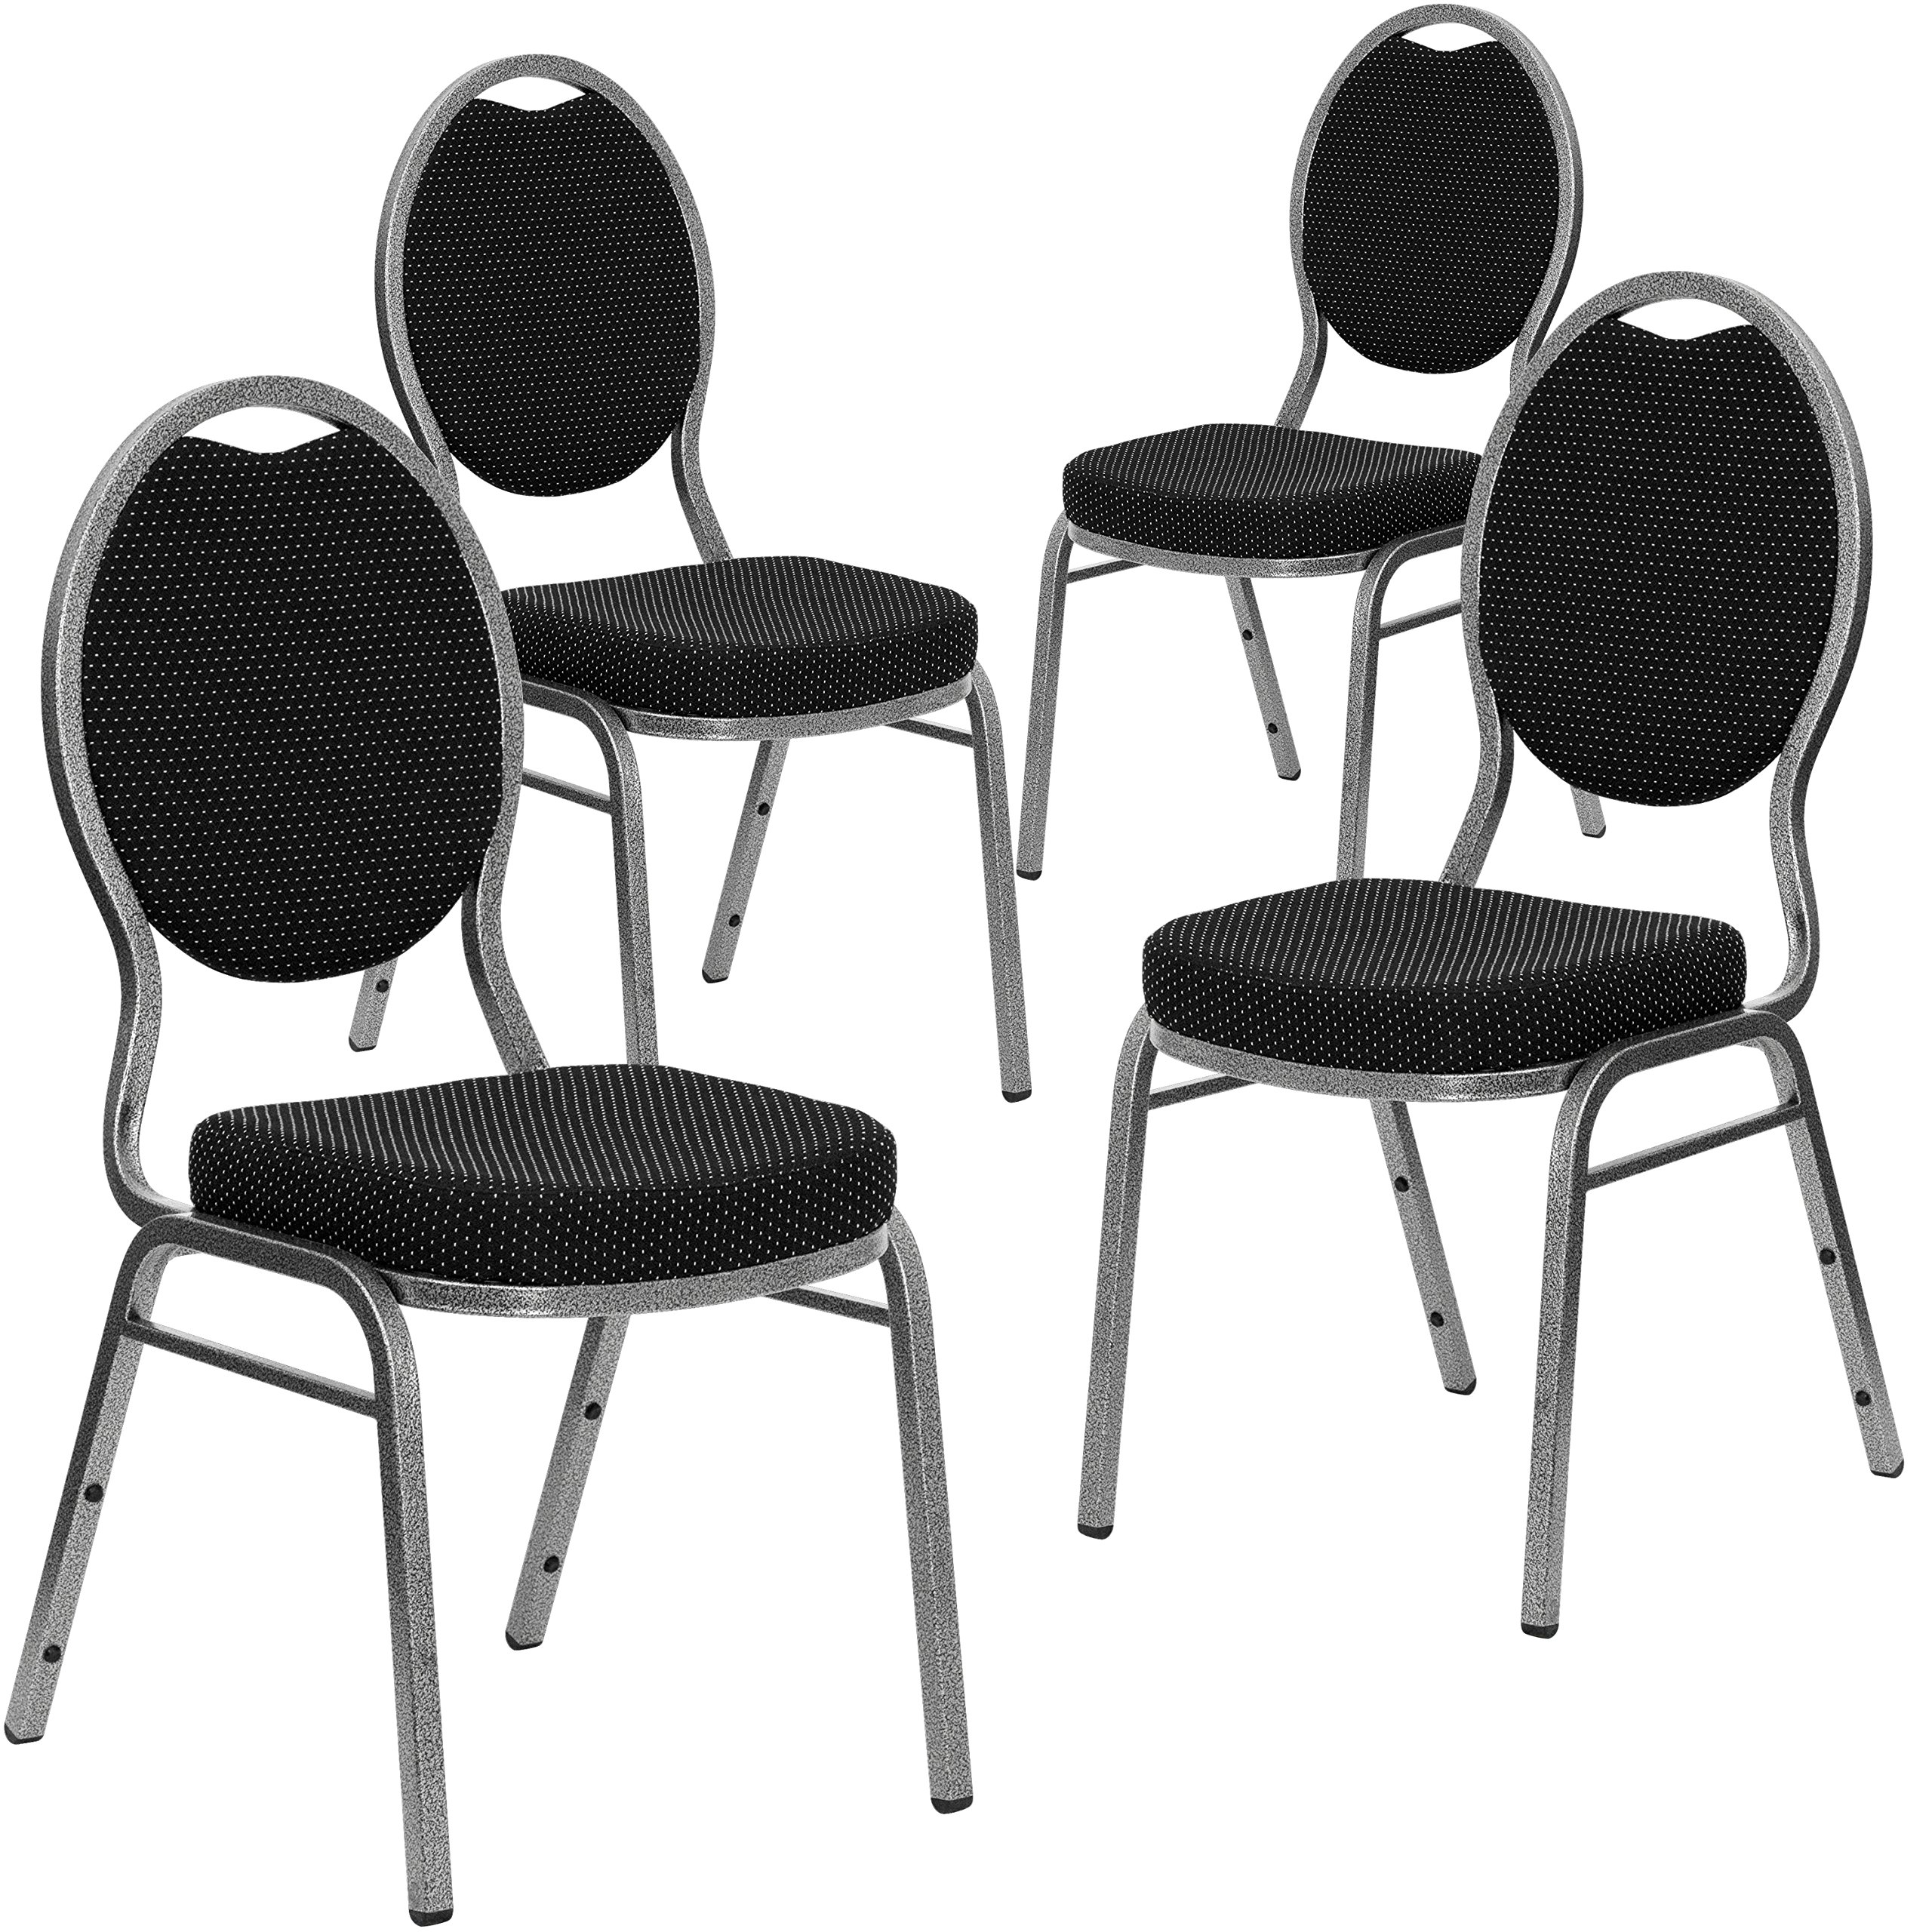 Flash Furniture 4 Pk. HERCULES Series Teardrop Back Stacking Banquet Chair in Black Patterned Fabric - Silver Vein Frame